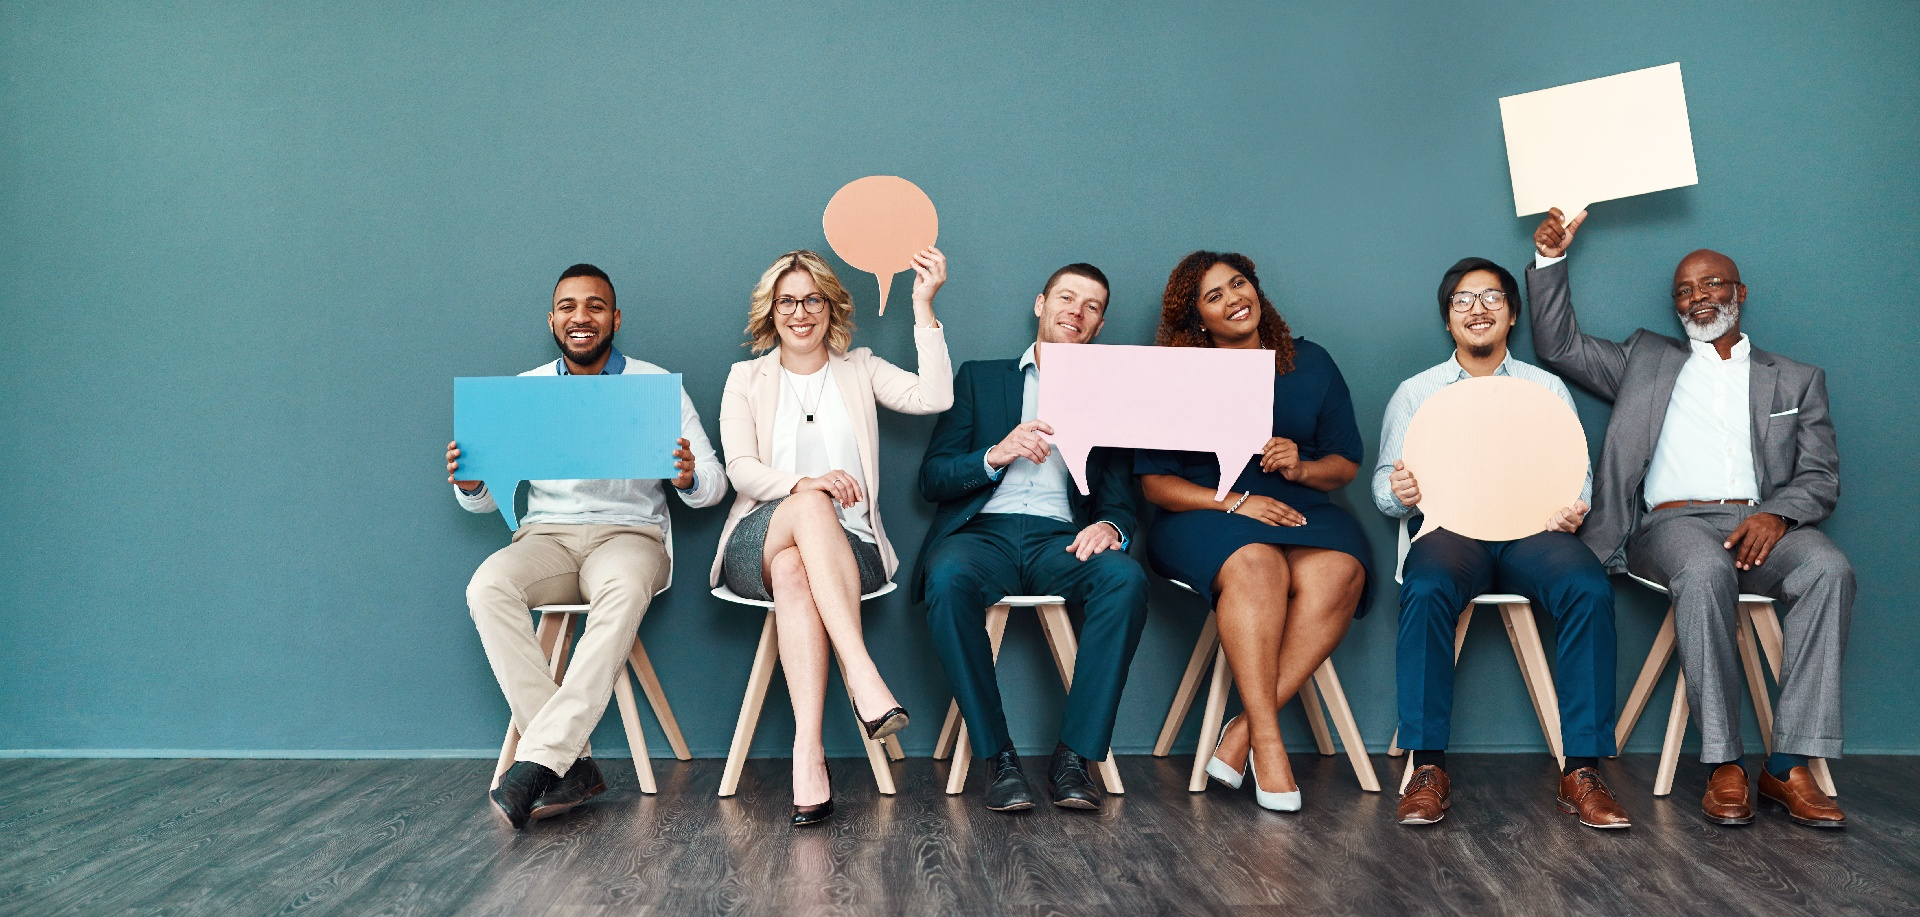 People in chairs holding up paper depictions of blank thought bubbles